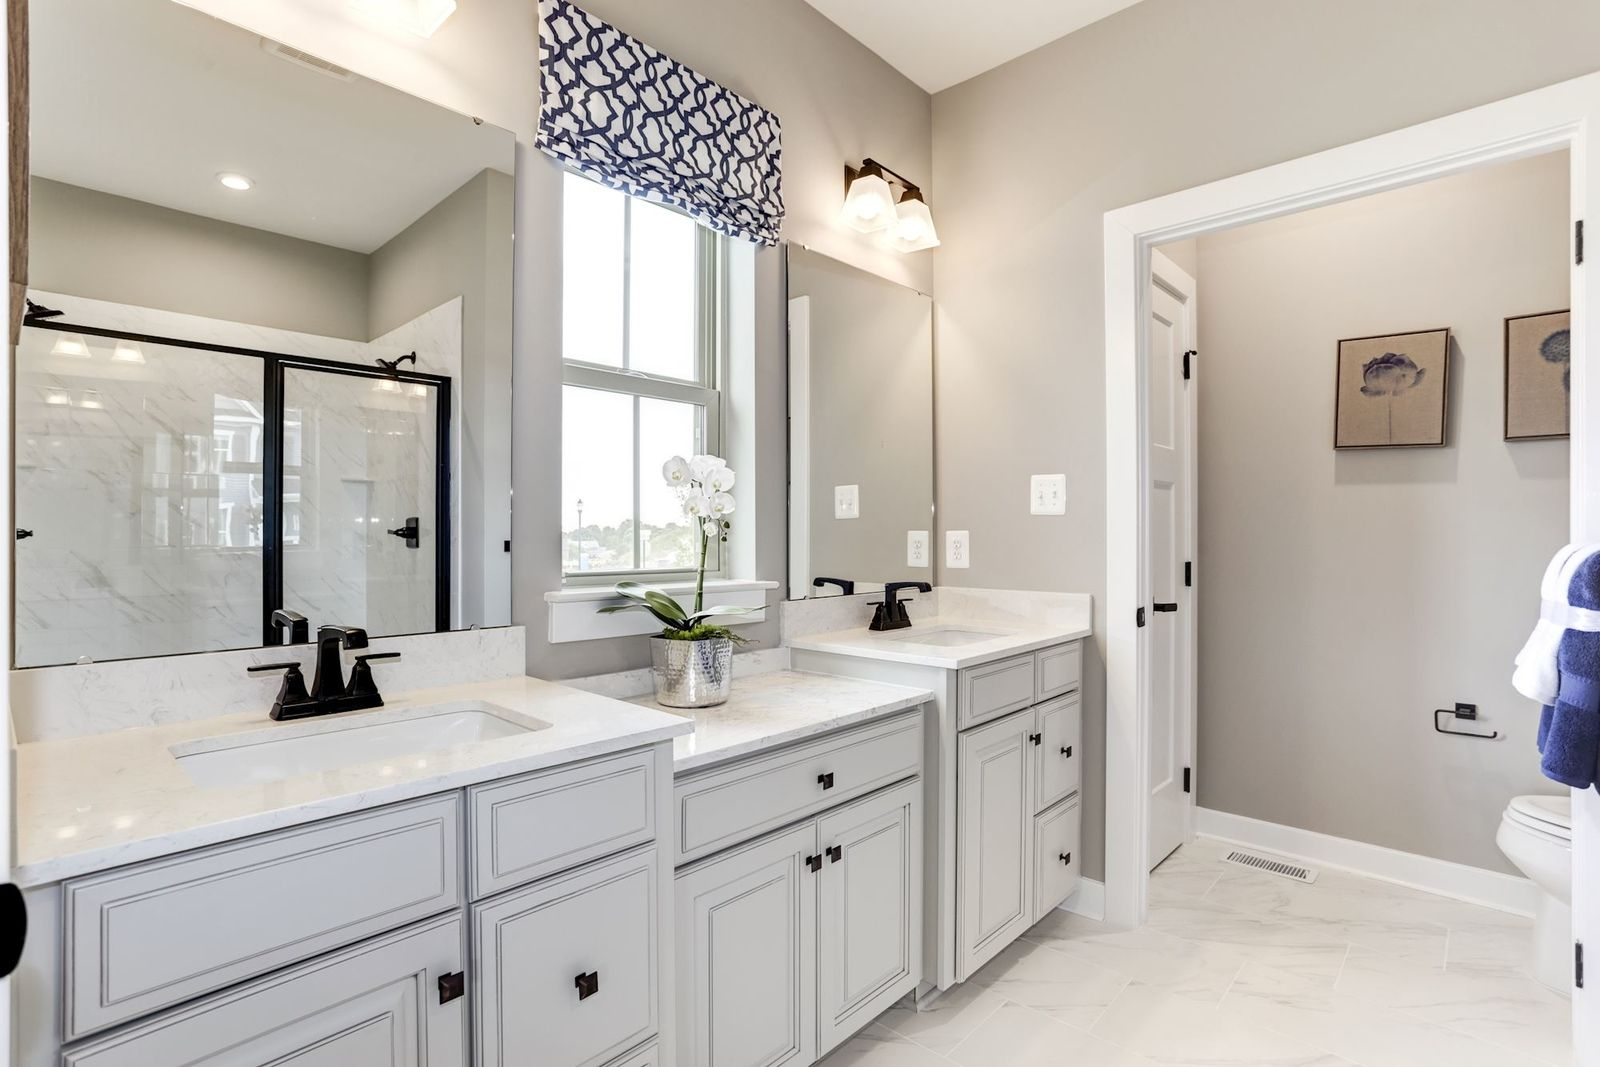 Bathroom featured in the Palladio 2 Story By Ryan Homes in Philadelphia, NJ